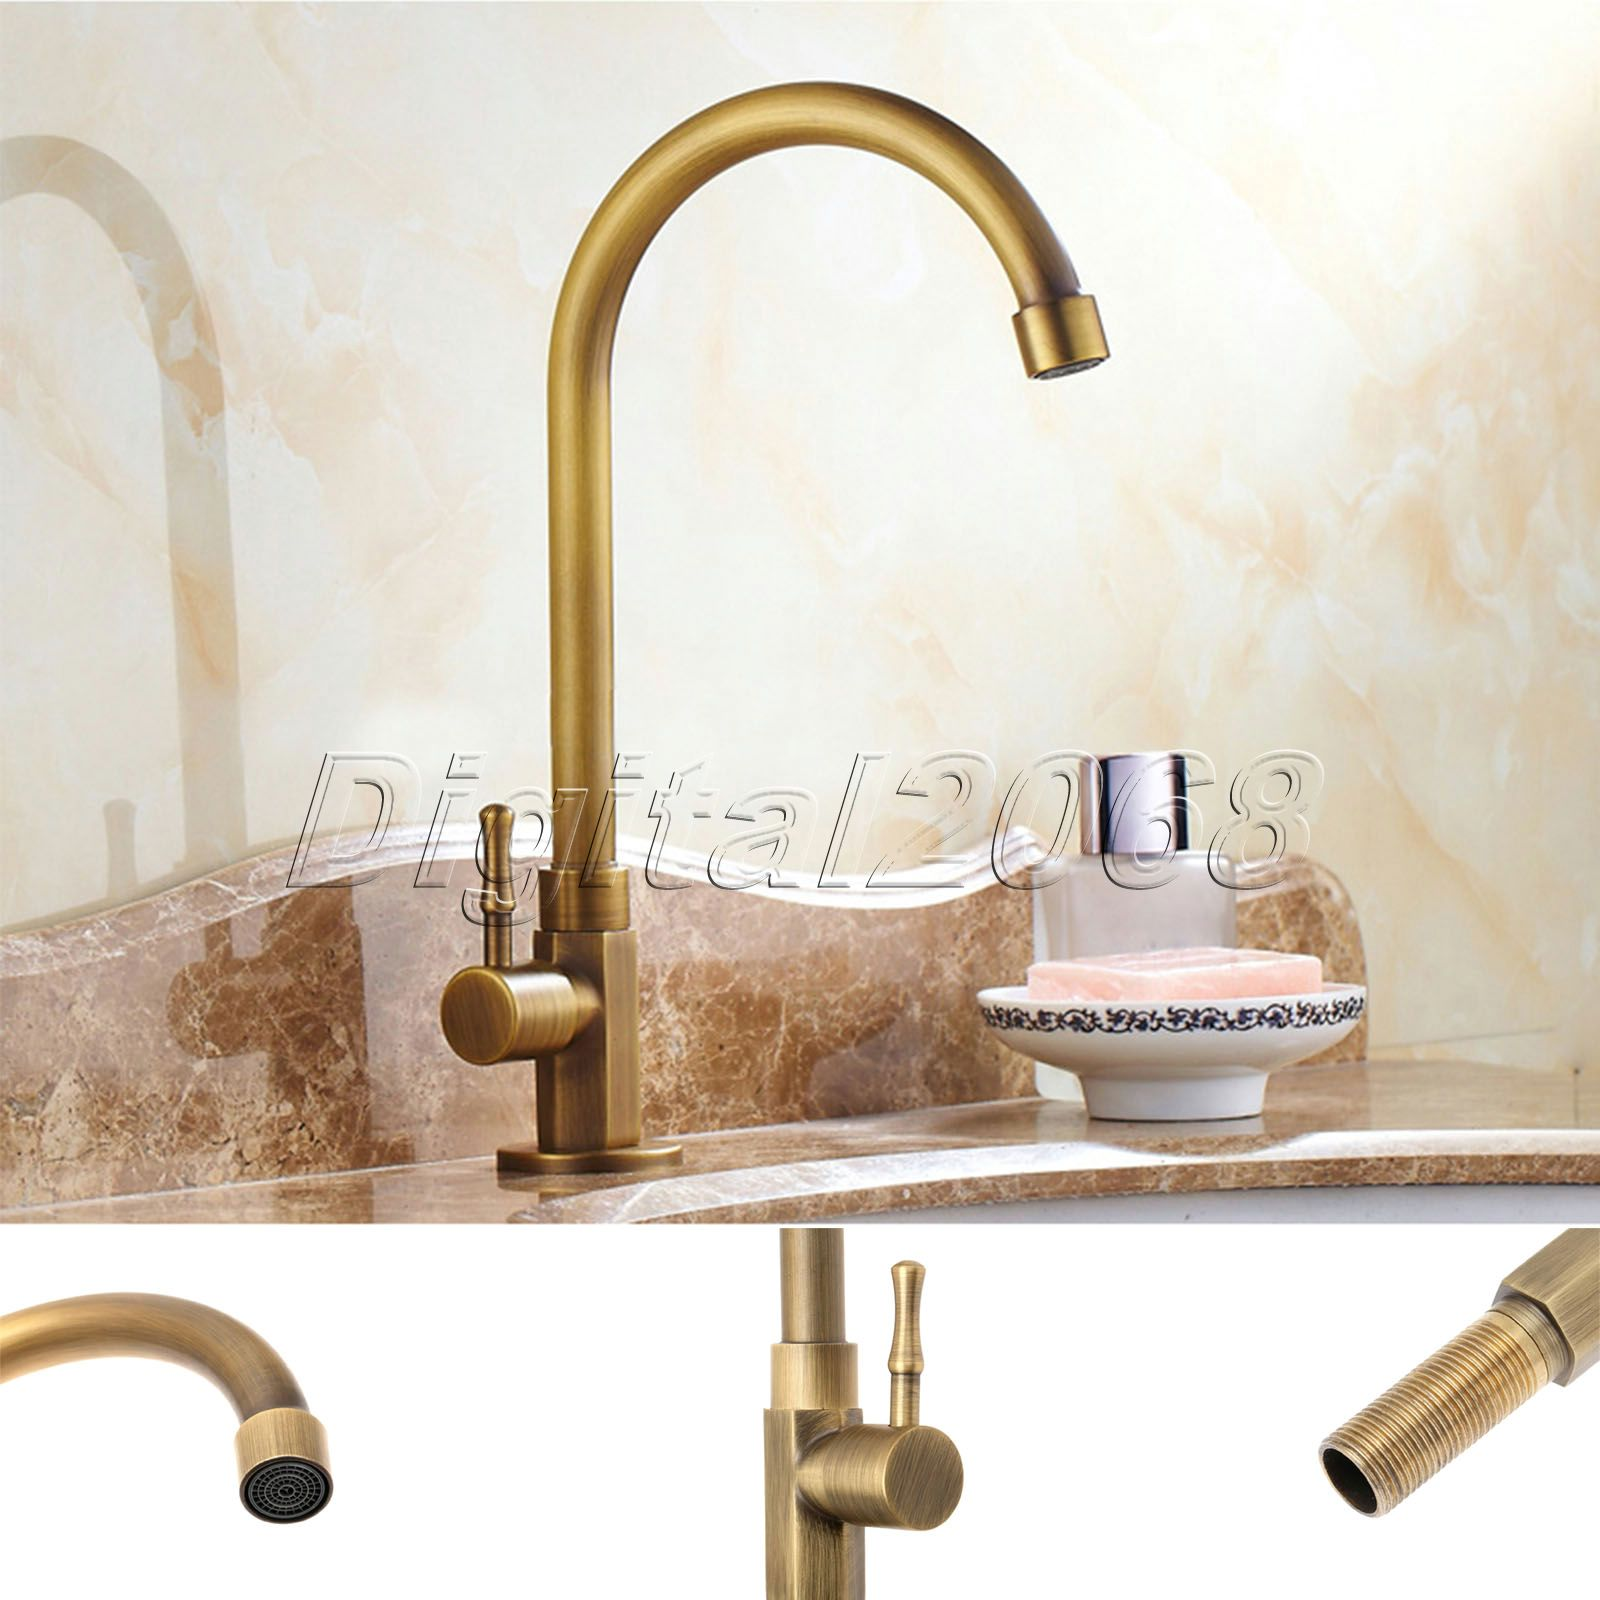 Brass Antique Luxury Bathroom Kitchen Sink Faucet Ceramic